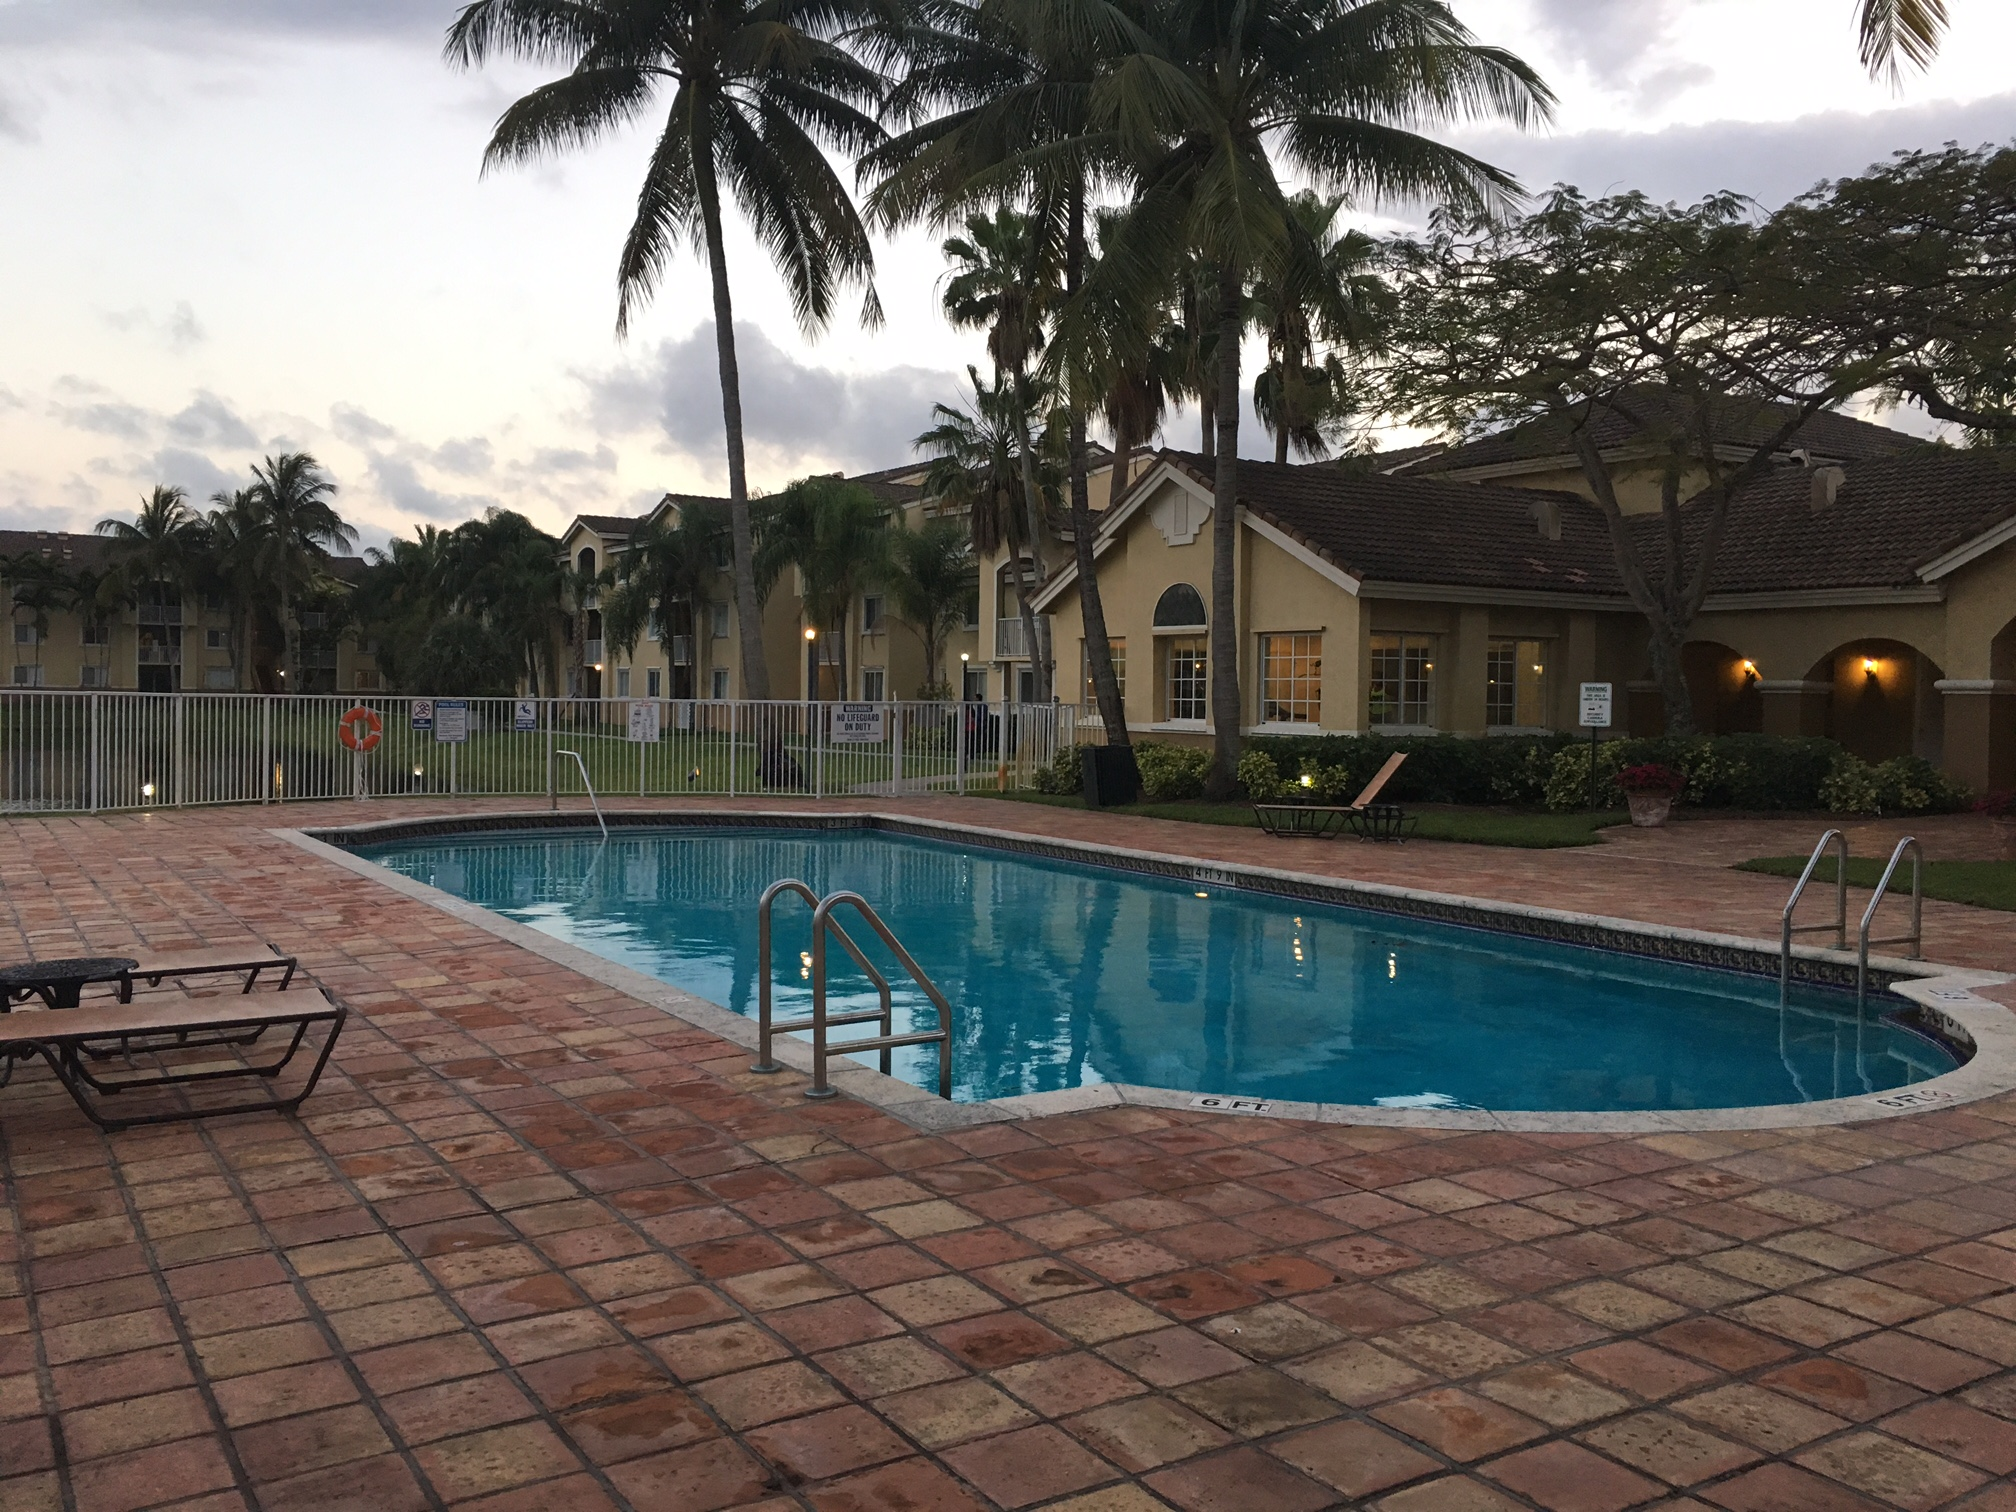 Under Contract – Royal Grand Condo – 2640 S University Dr #318 Davie Fl 33328